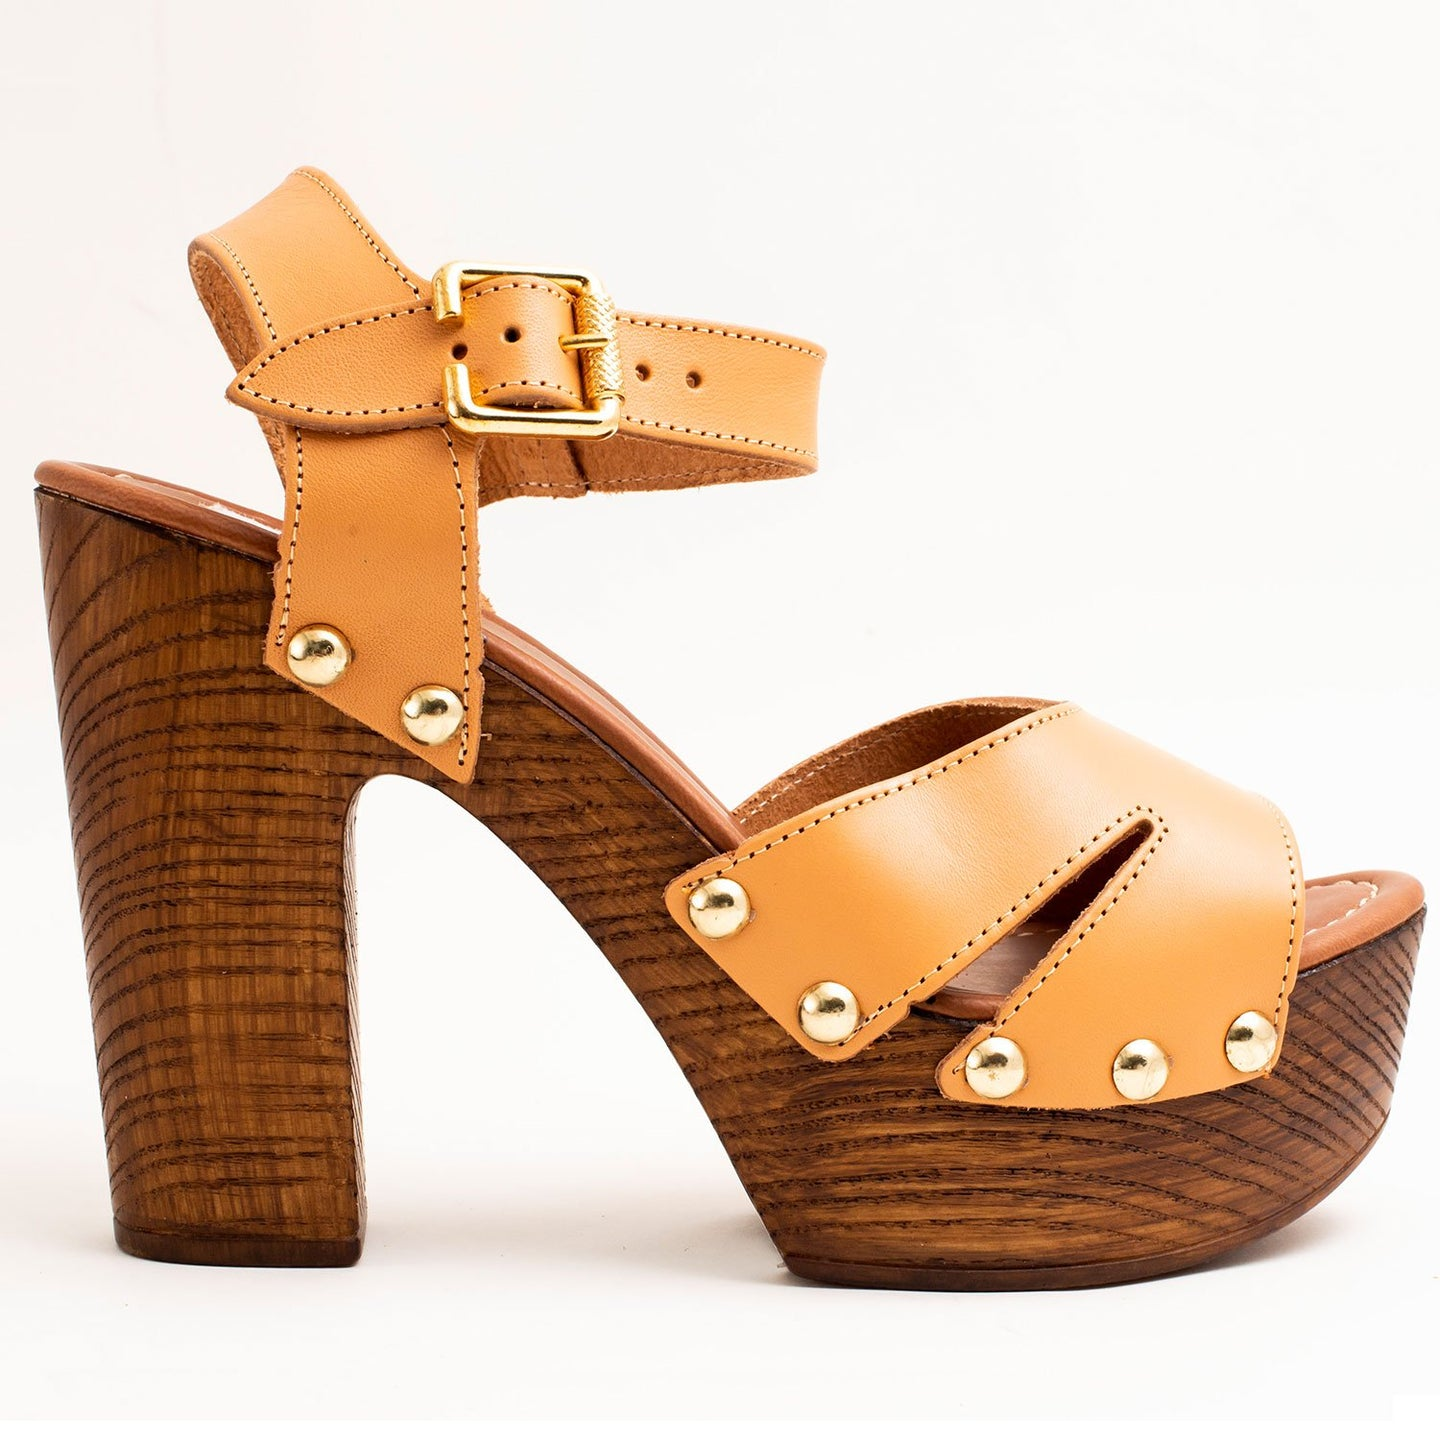 LIGHT BROWN PLATFORM SANDALS WITH CROSSING PEEP-TOE ANKLE STRAP